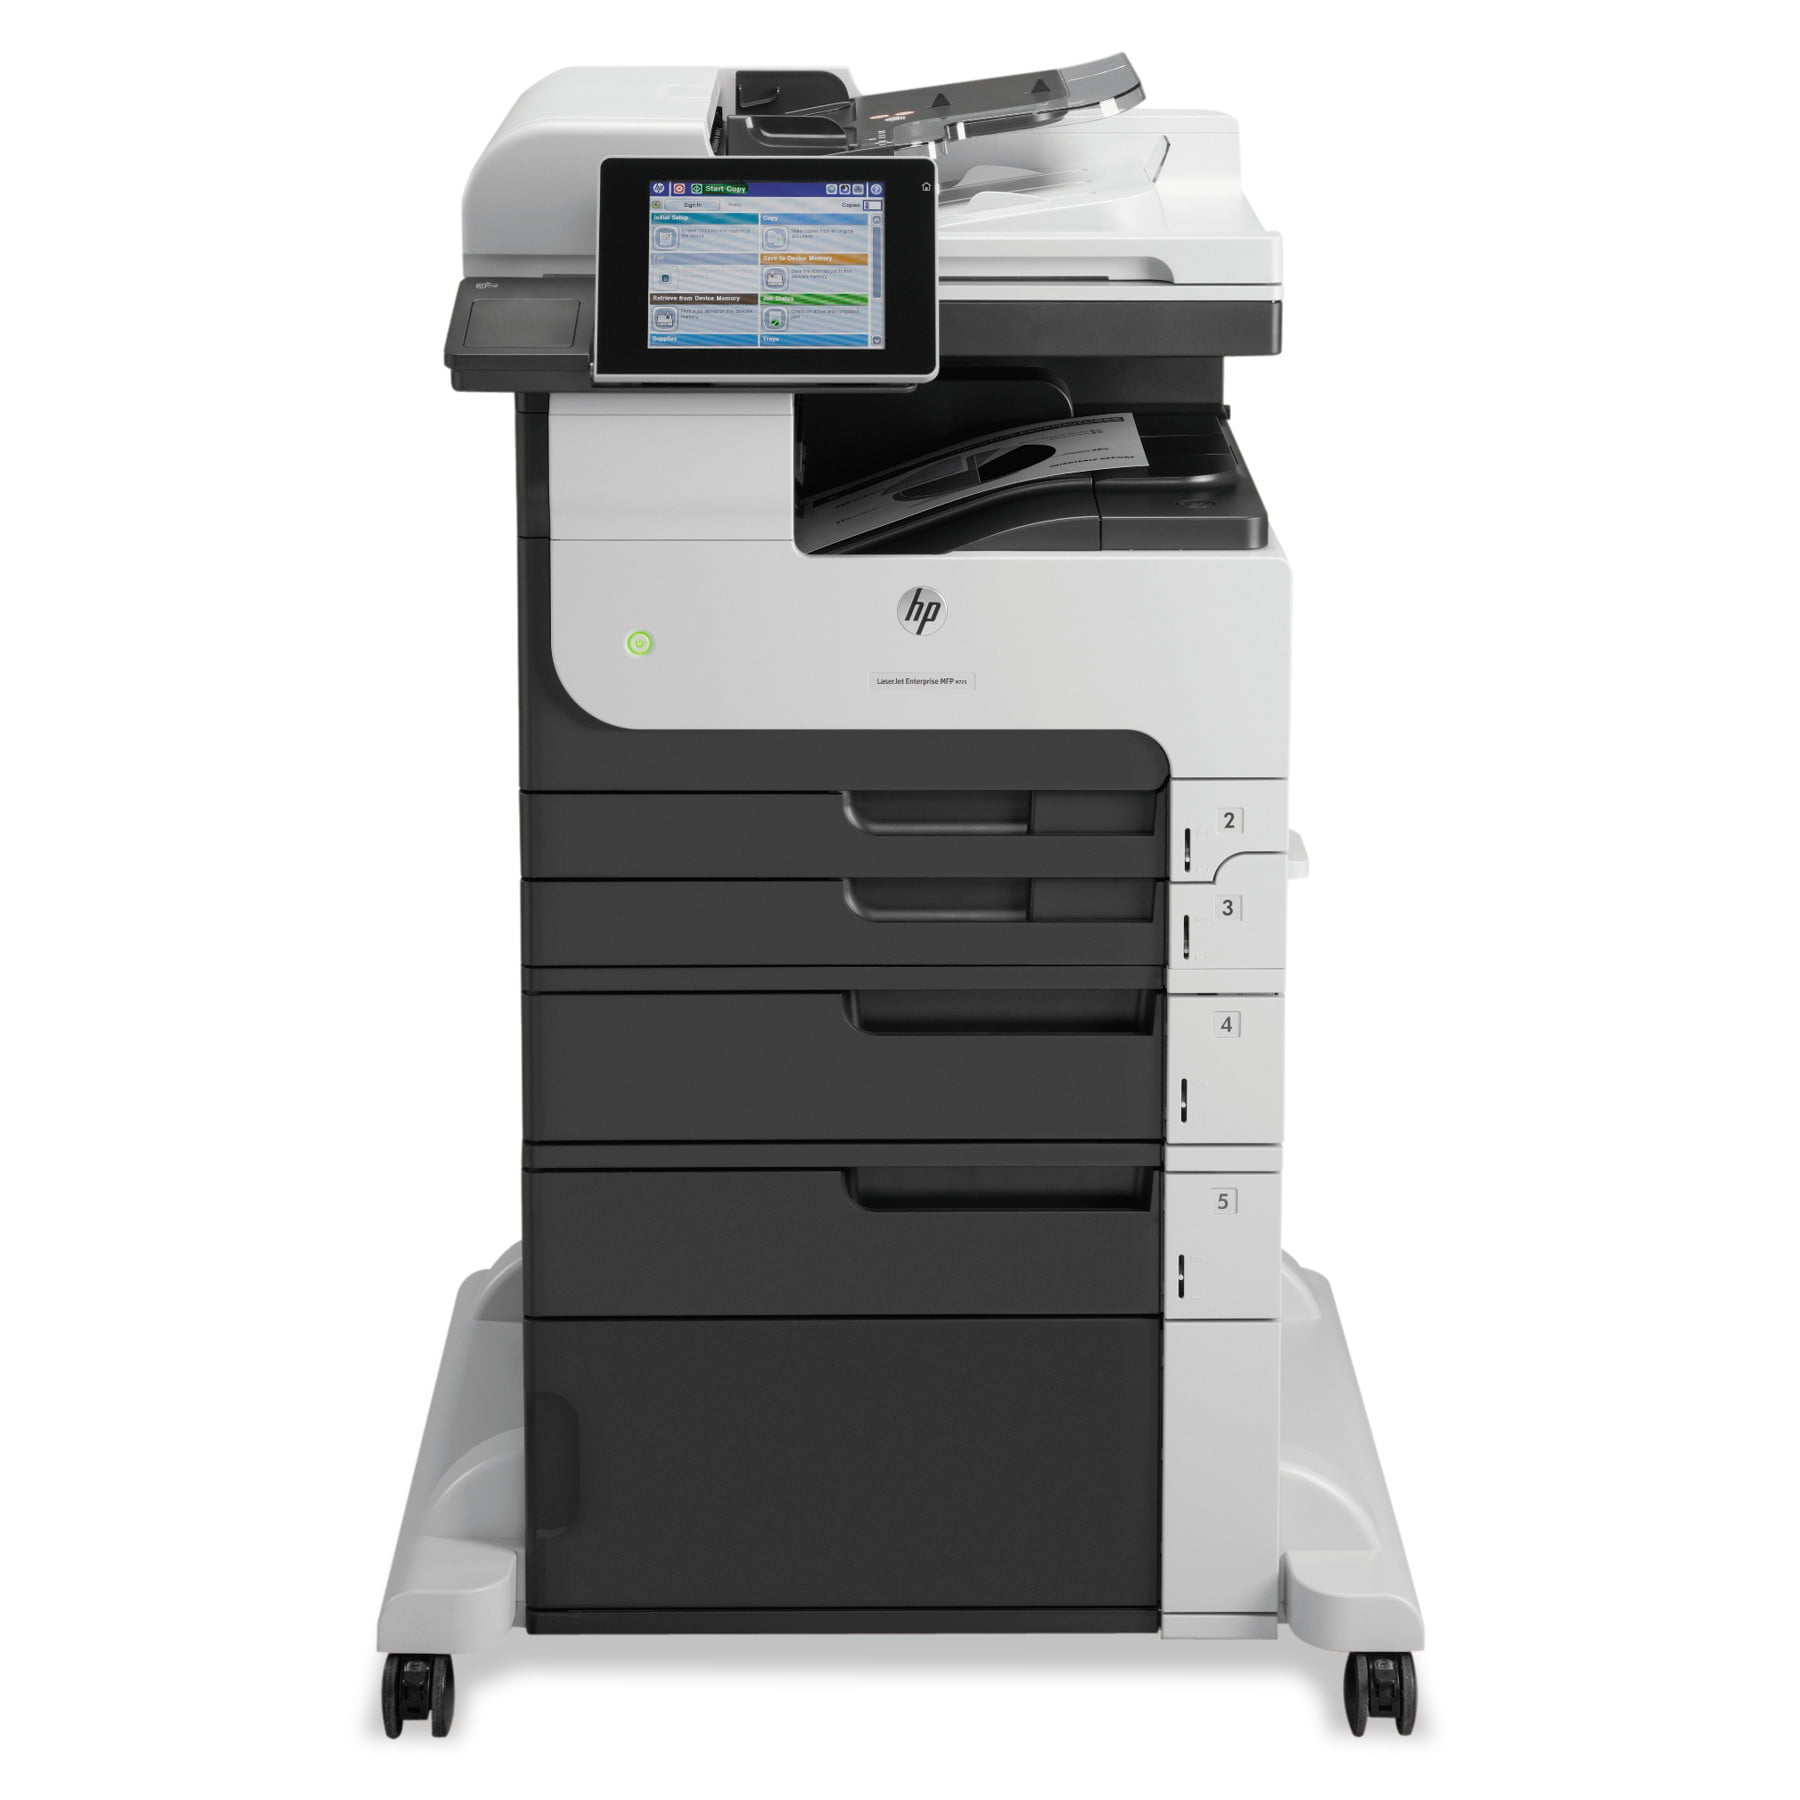 HP LaserJet Enterprise MFP M725f Multifunction Laser Printer, Copy Fax Print Scan by HP